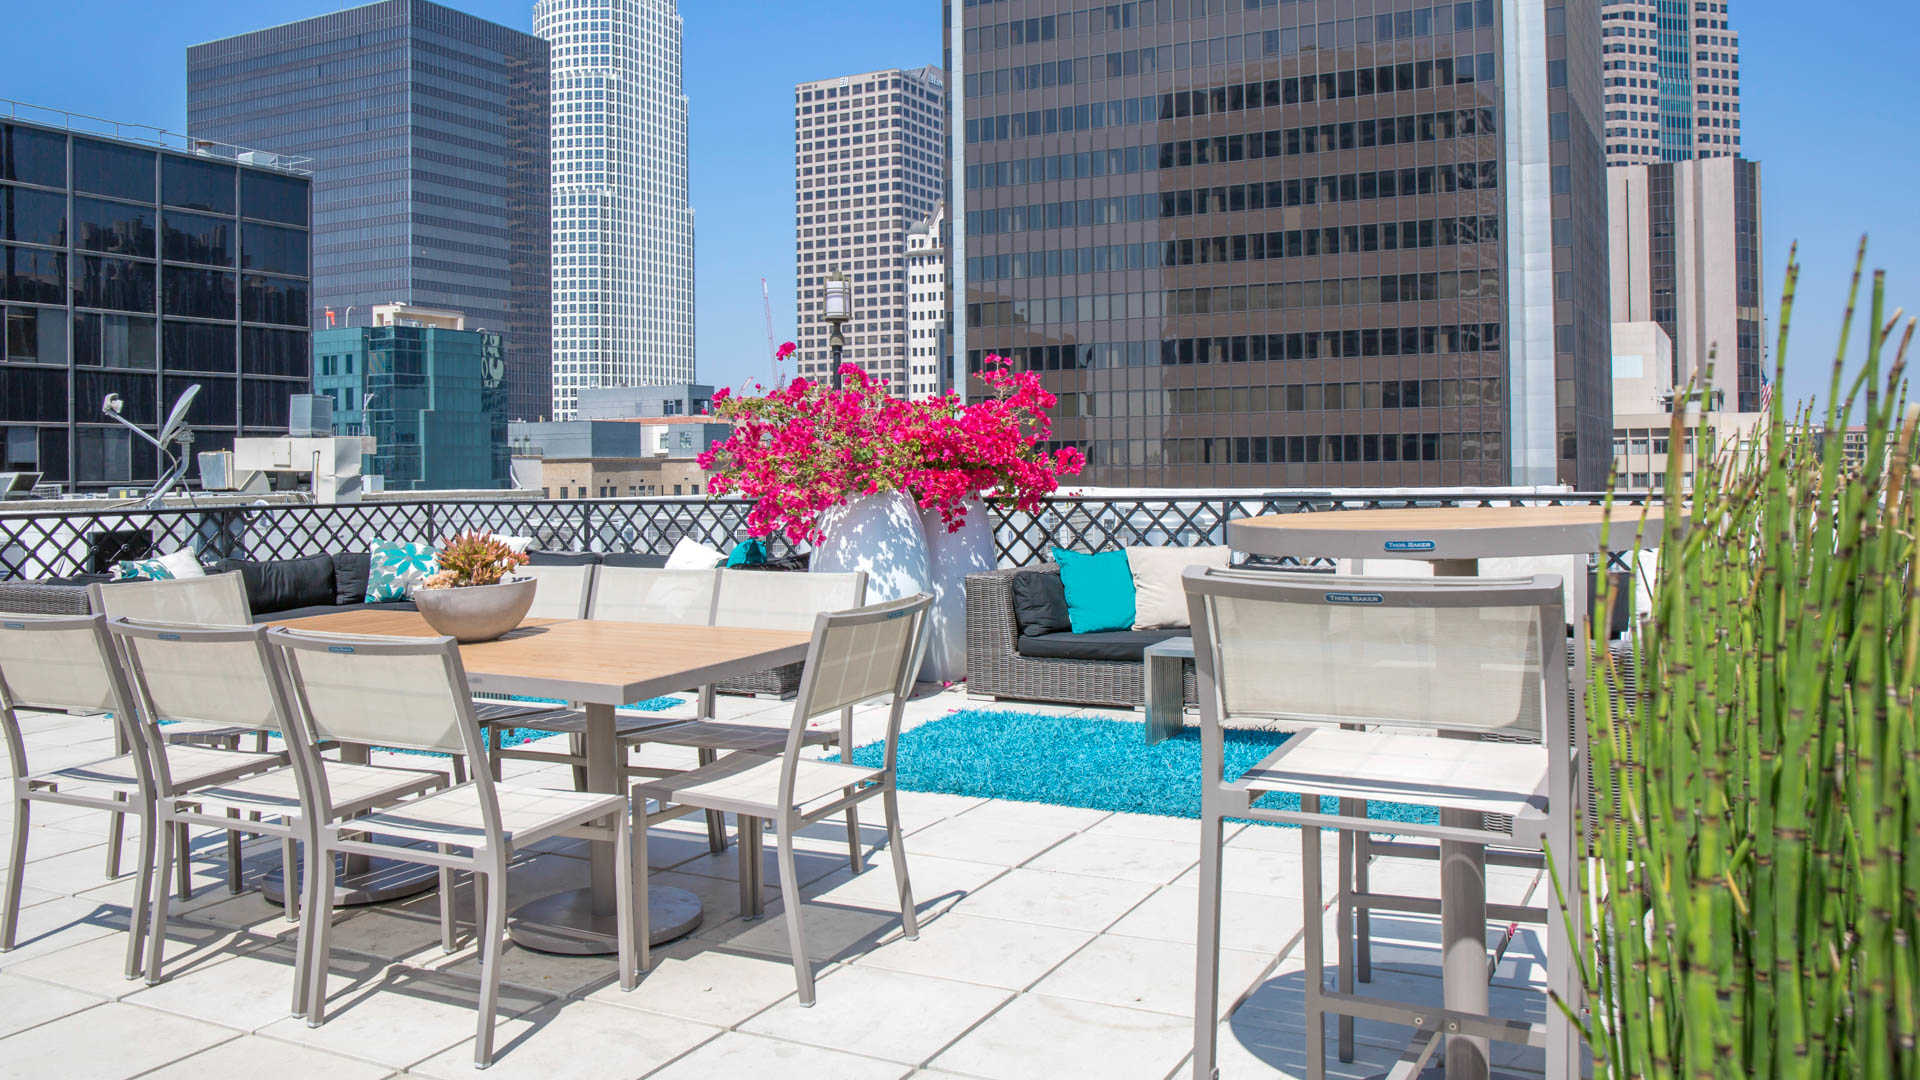 Milano Lofts Apartments Reviews In Financial District   609 S. Grand Ave |  EquityApartments.com